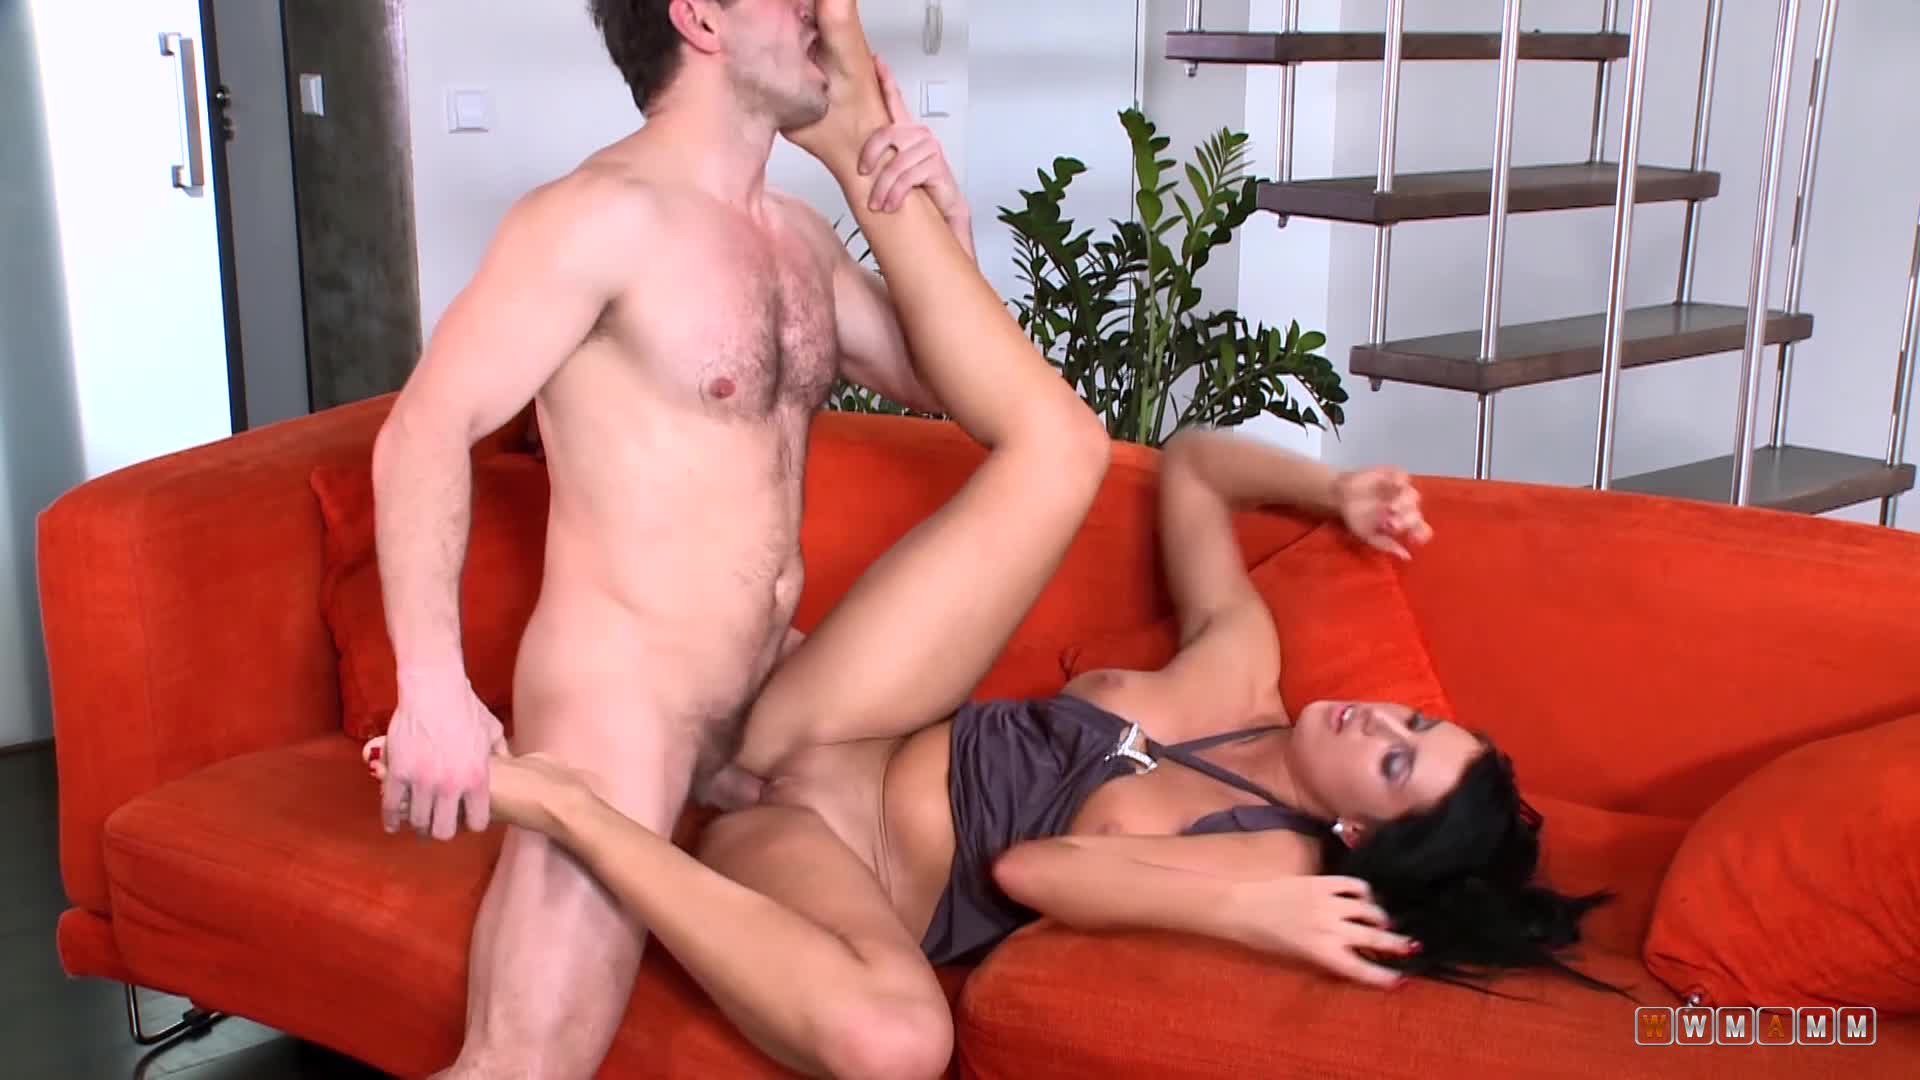 Melissa Likes The Hot Jizz Nowhere Else But Right On Her Feet